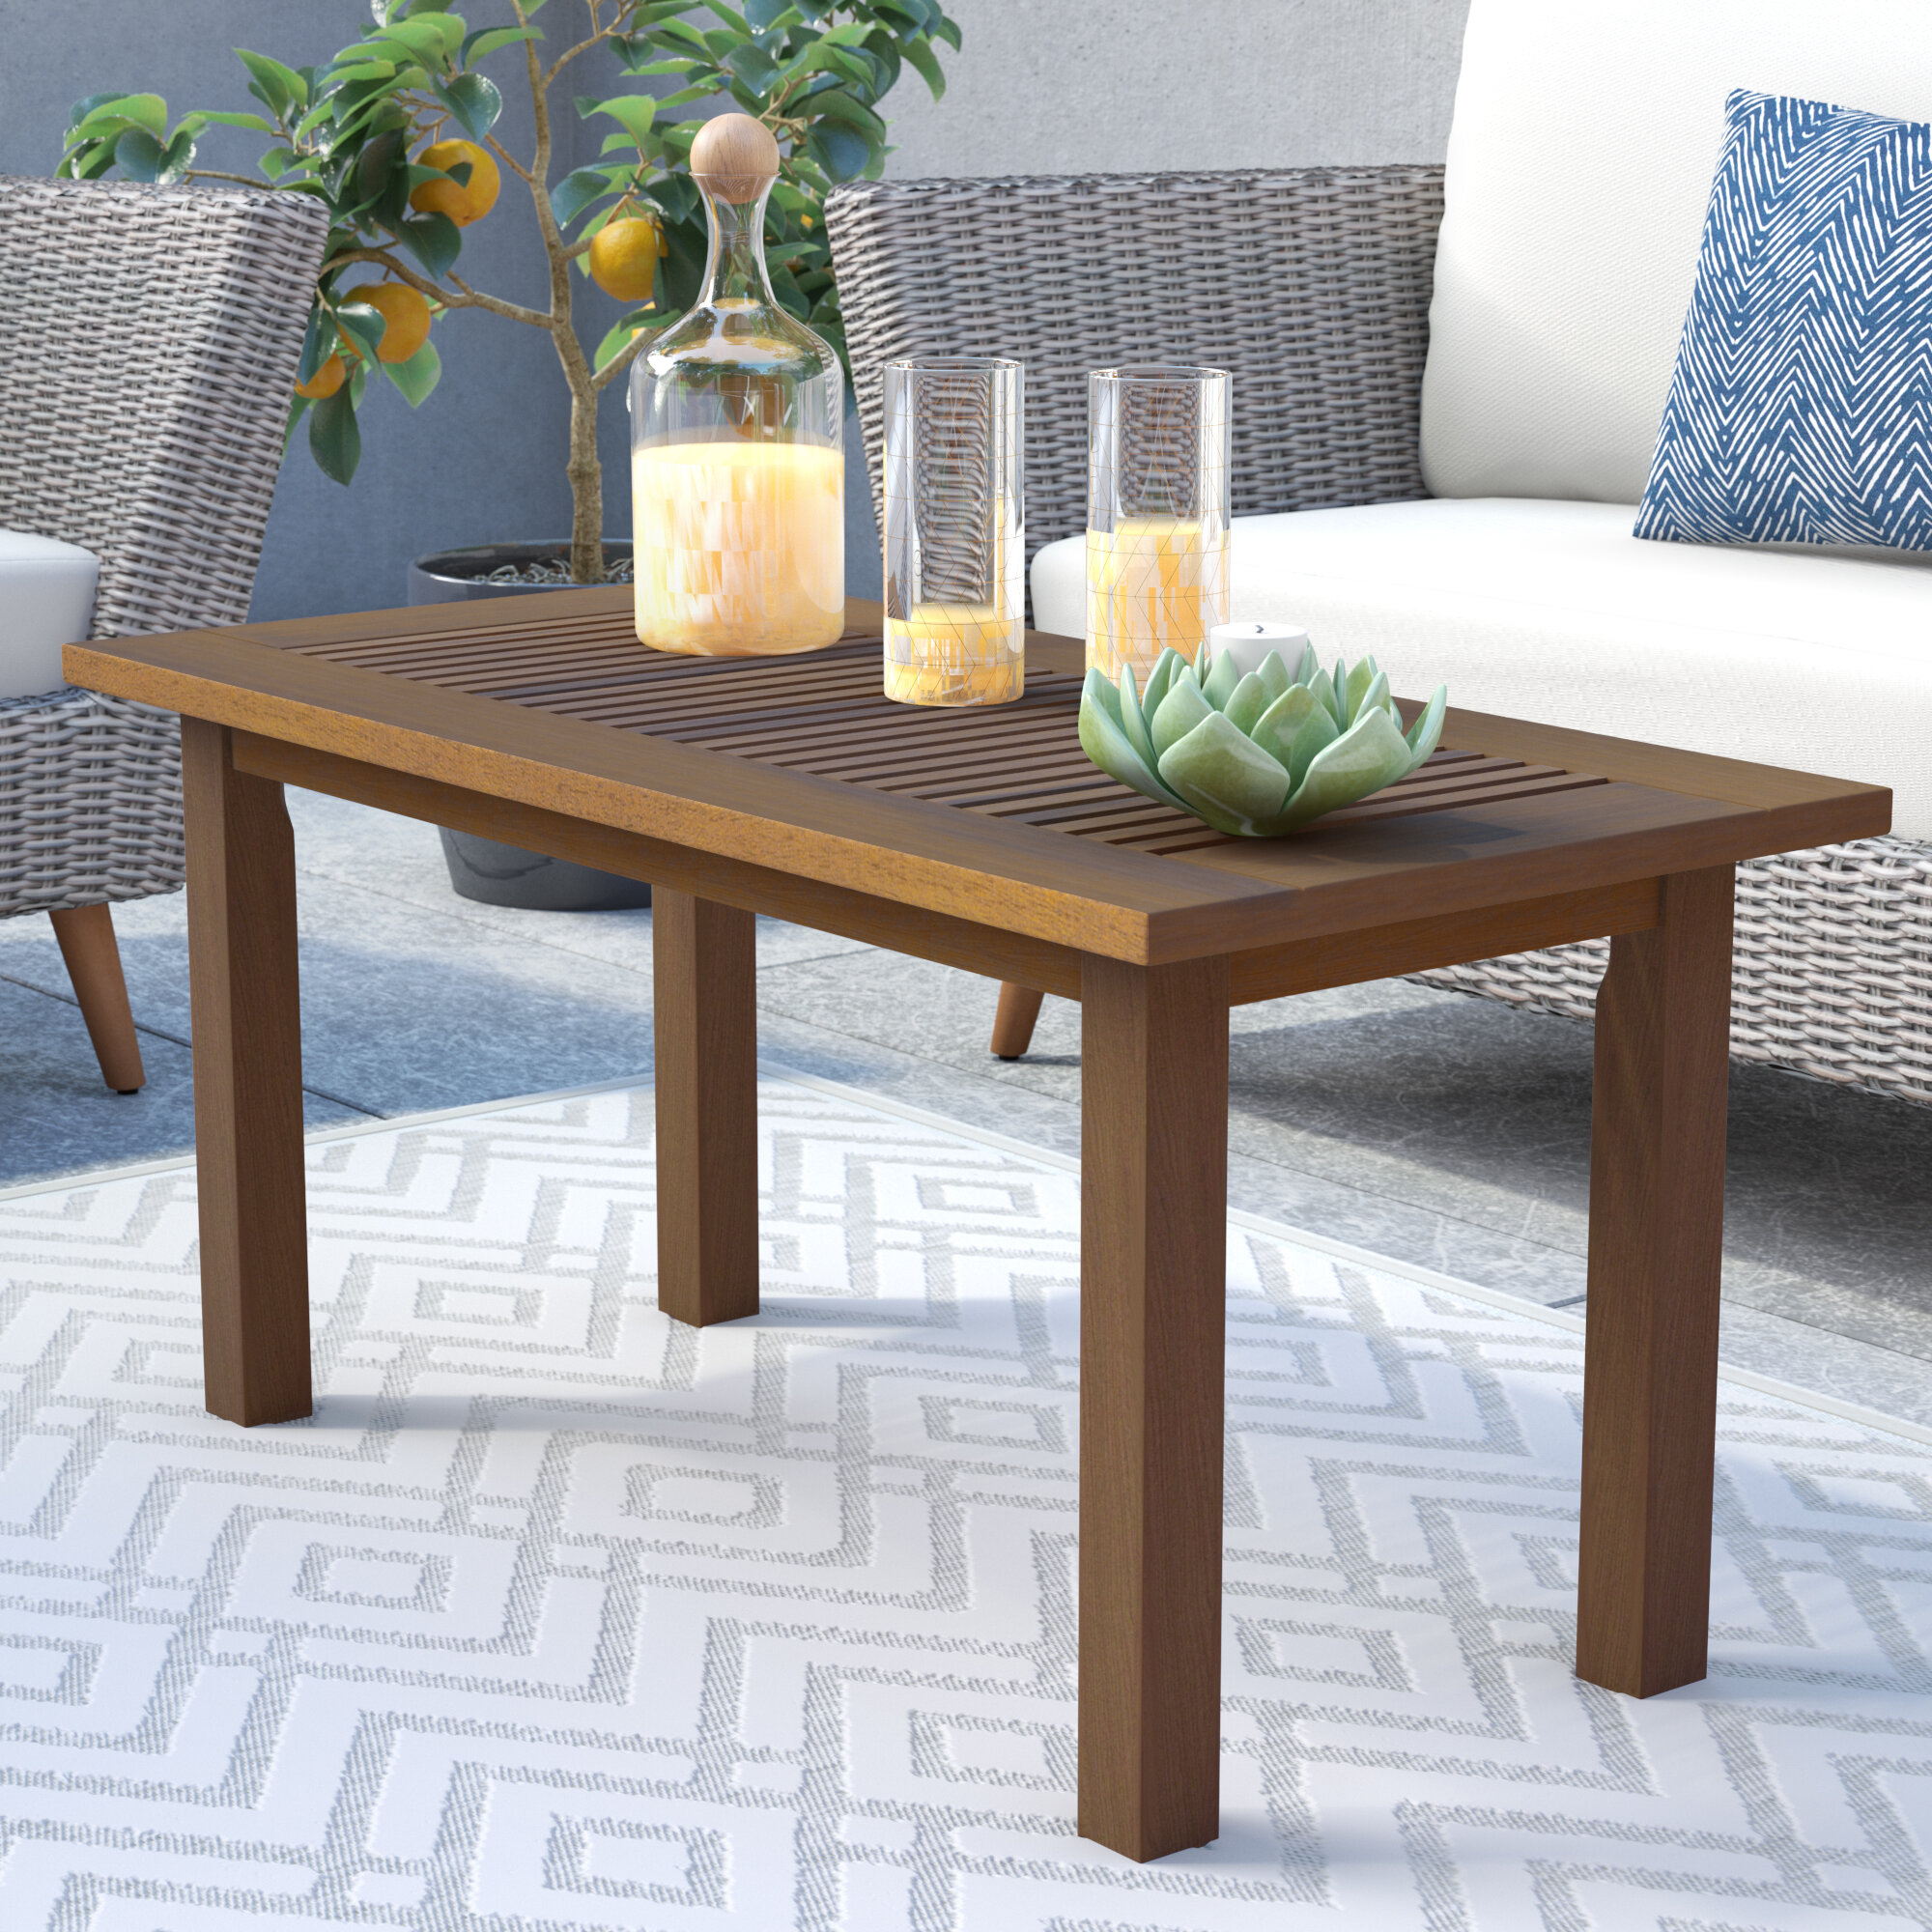 George Oliver Arianna Teak Coffee Table Reviews Wayfair Co Uk